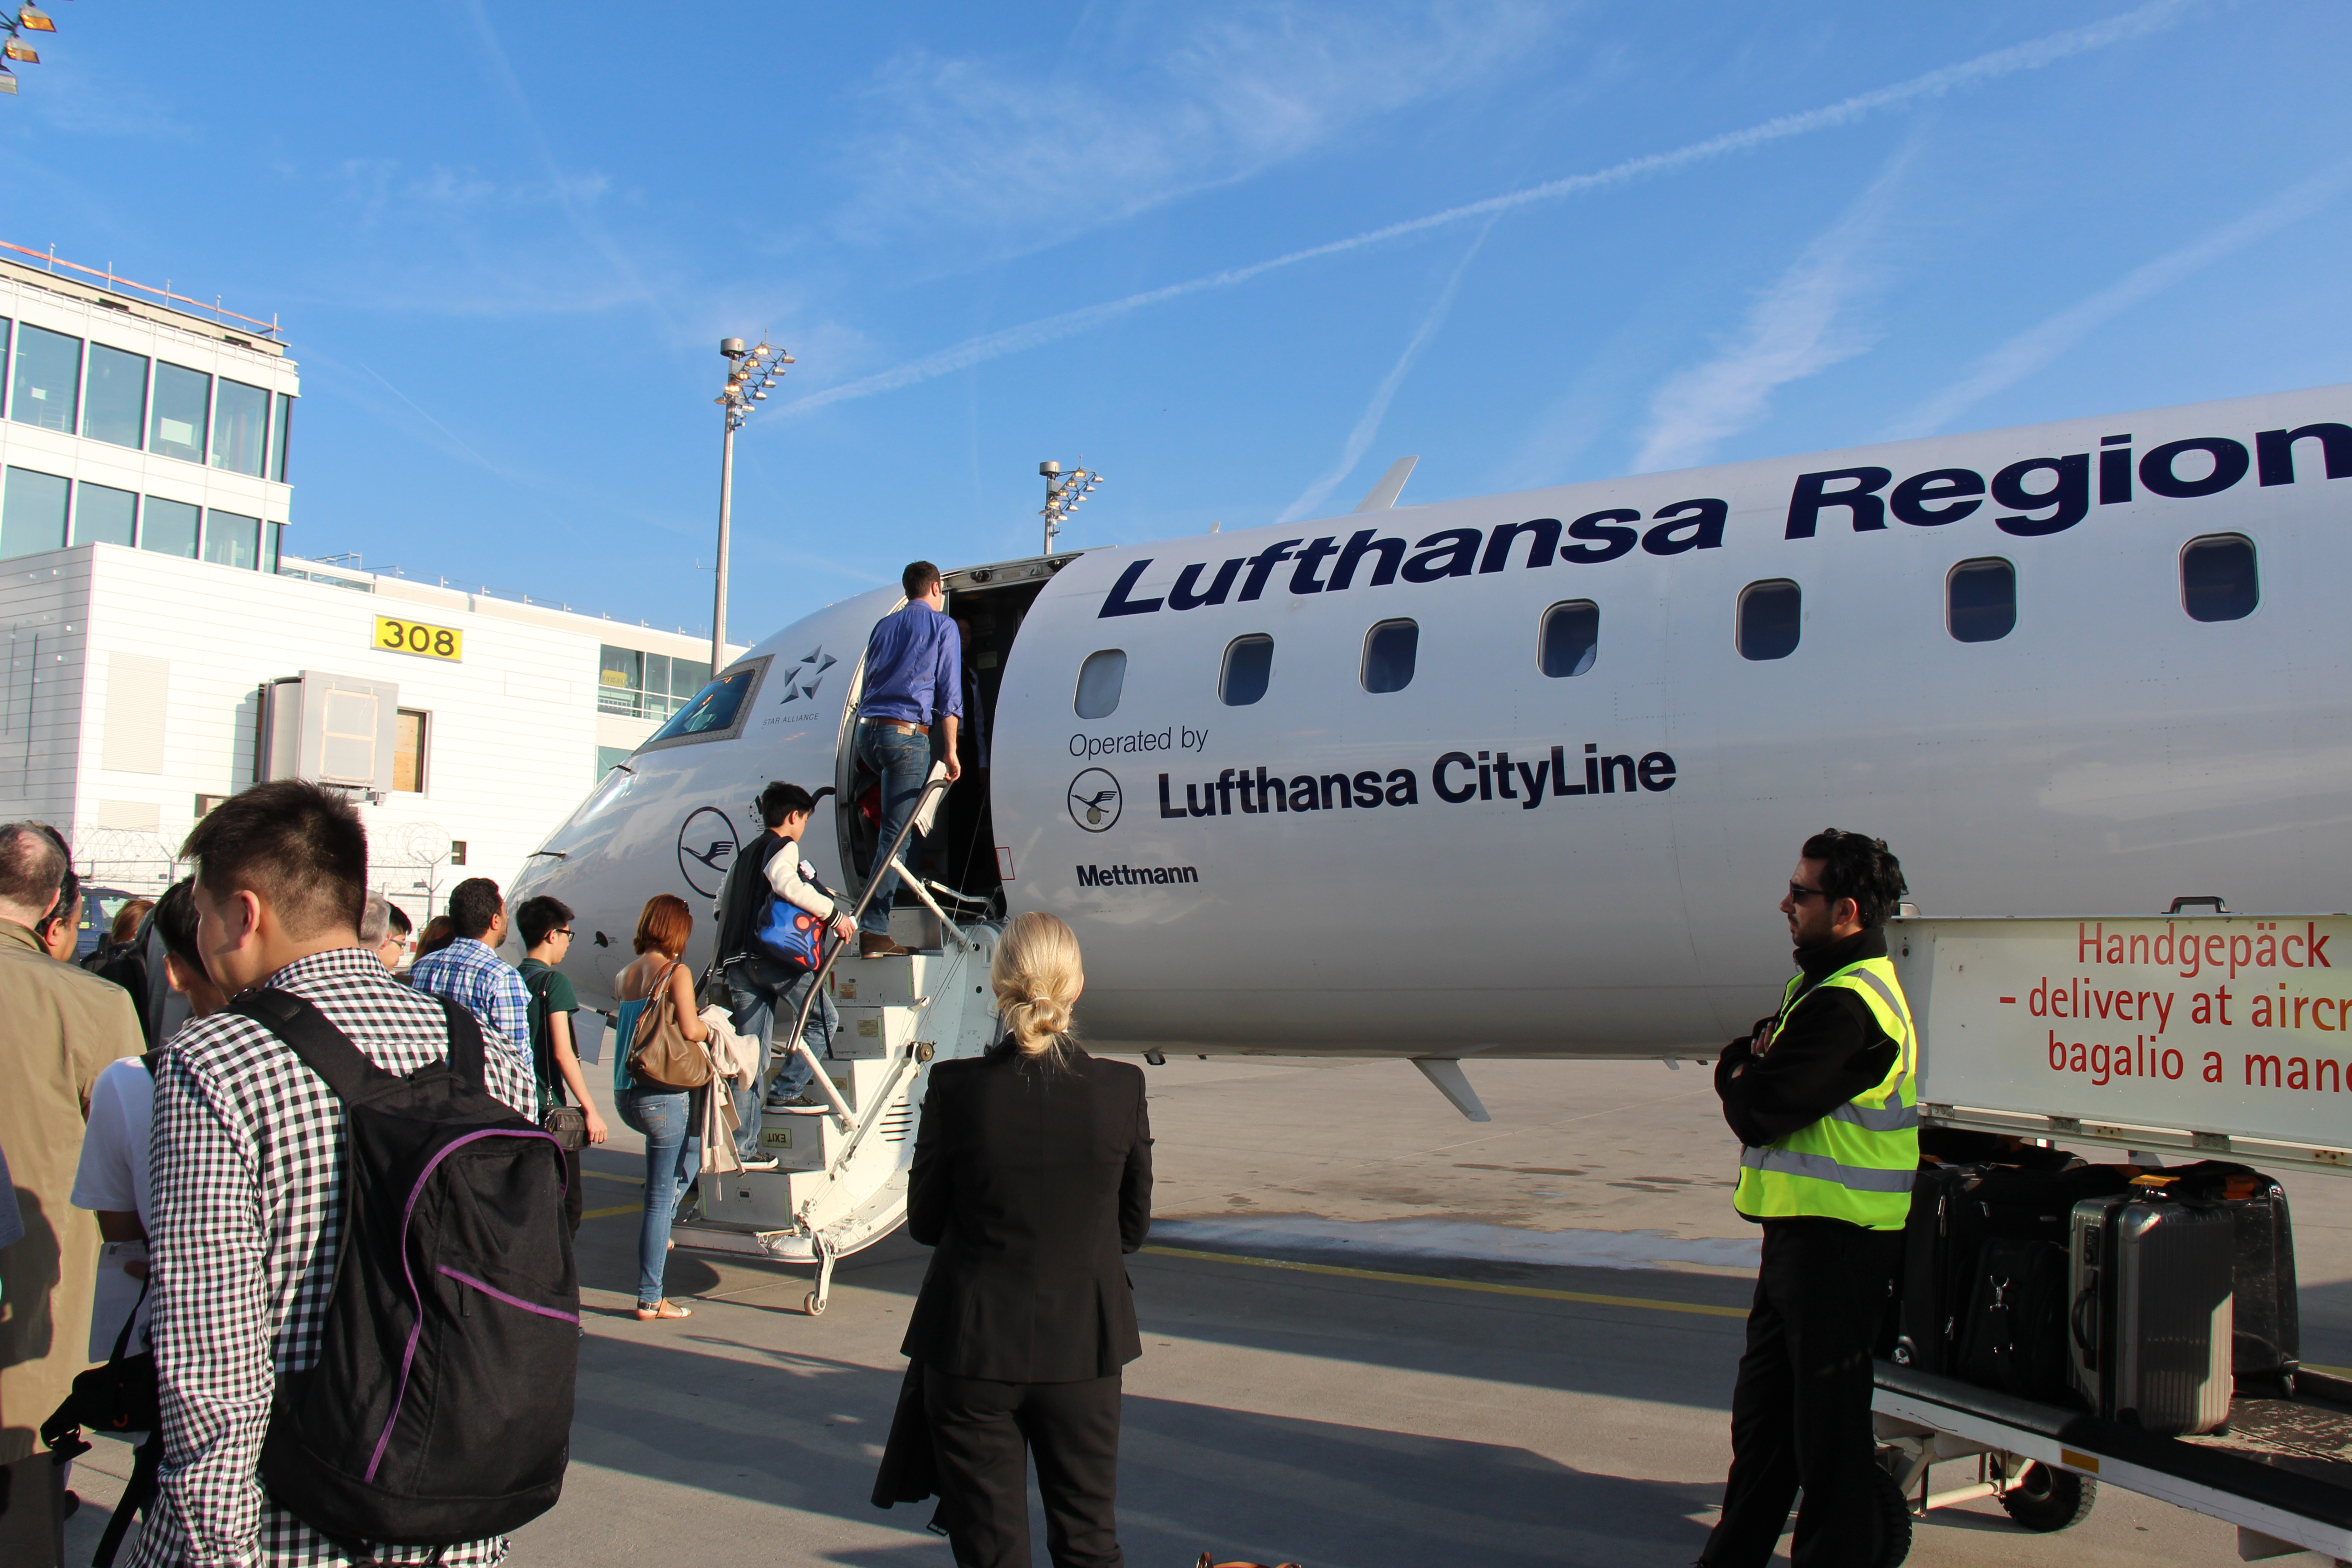 Some 40 Hong Kong journalism students transit from Munich to Leipzig for an hour-long domestic flight.